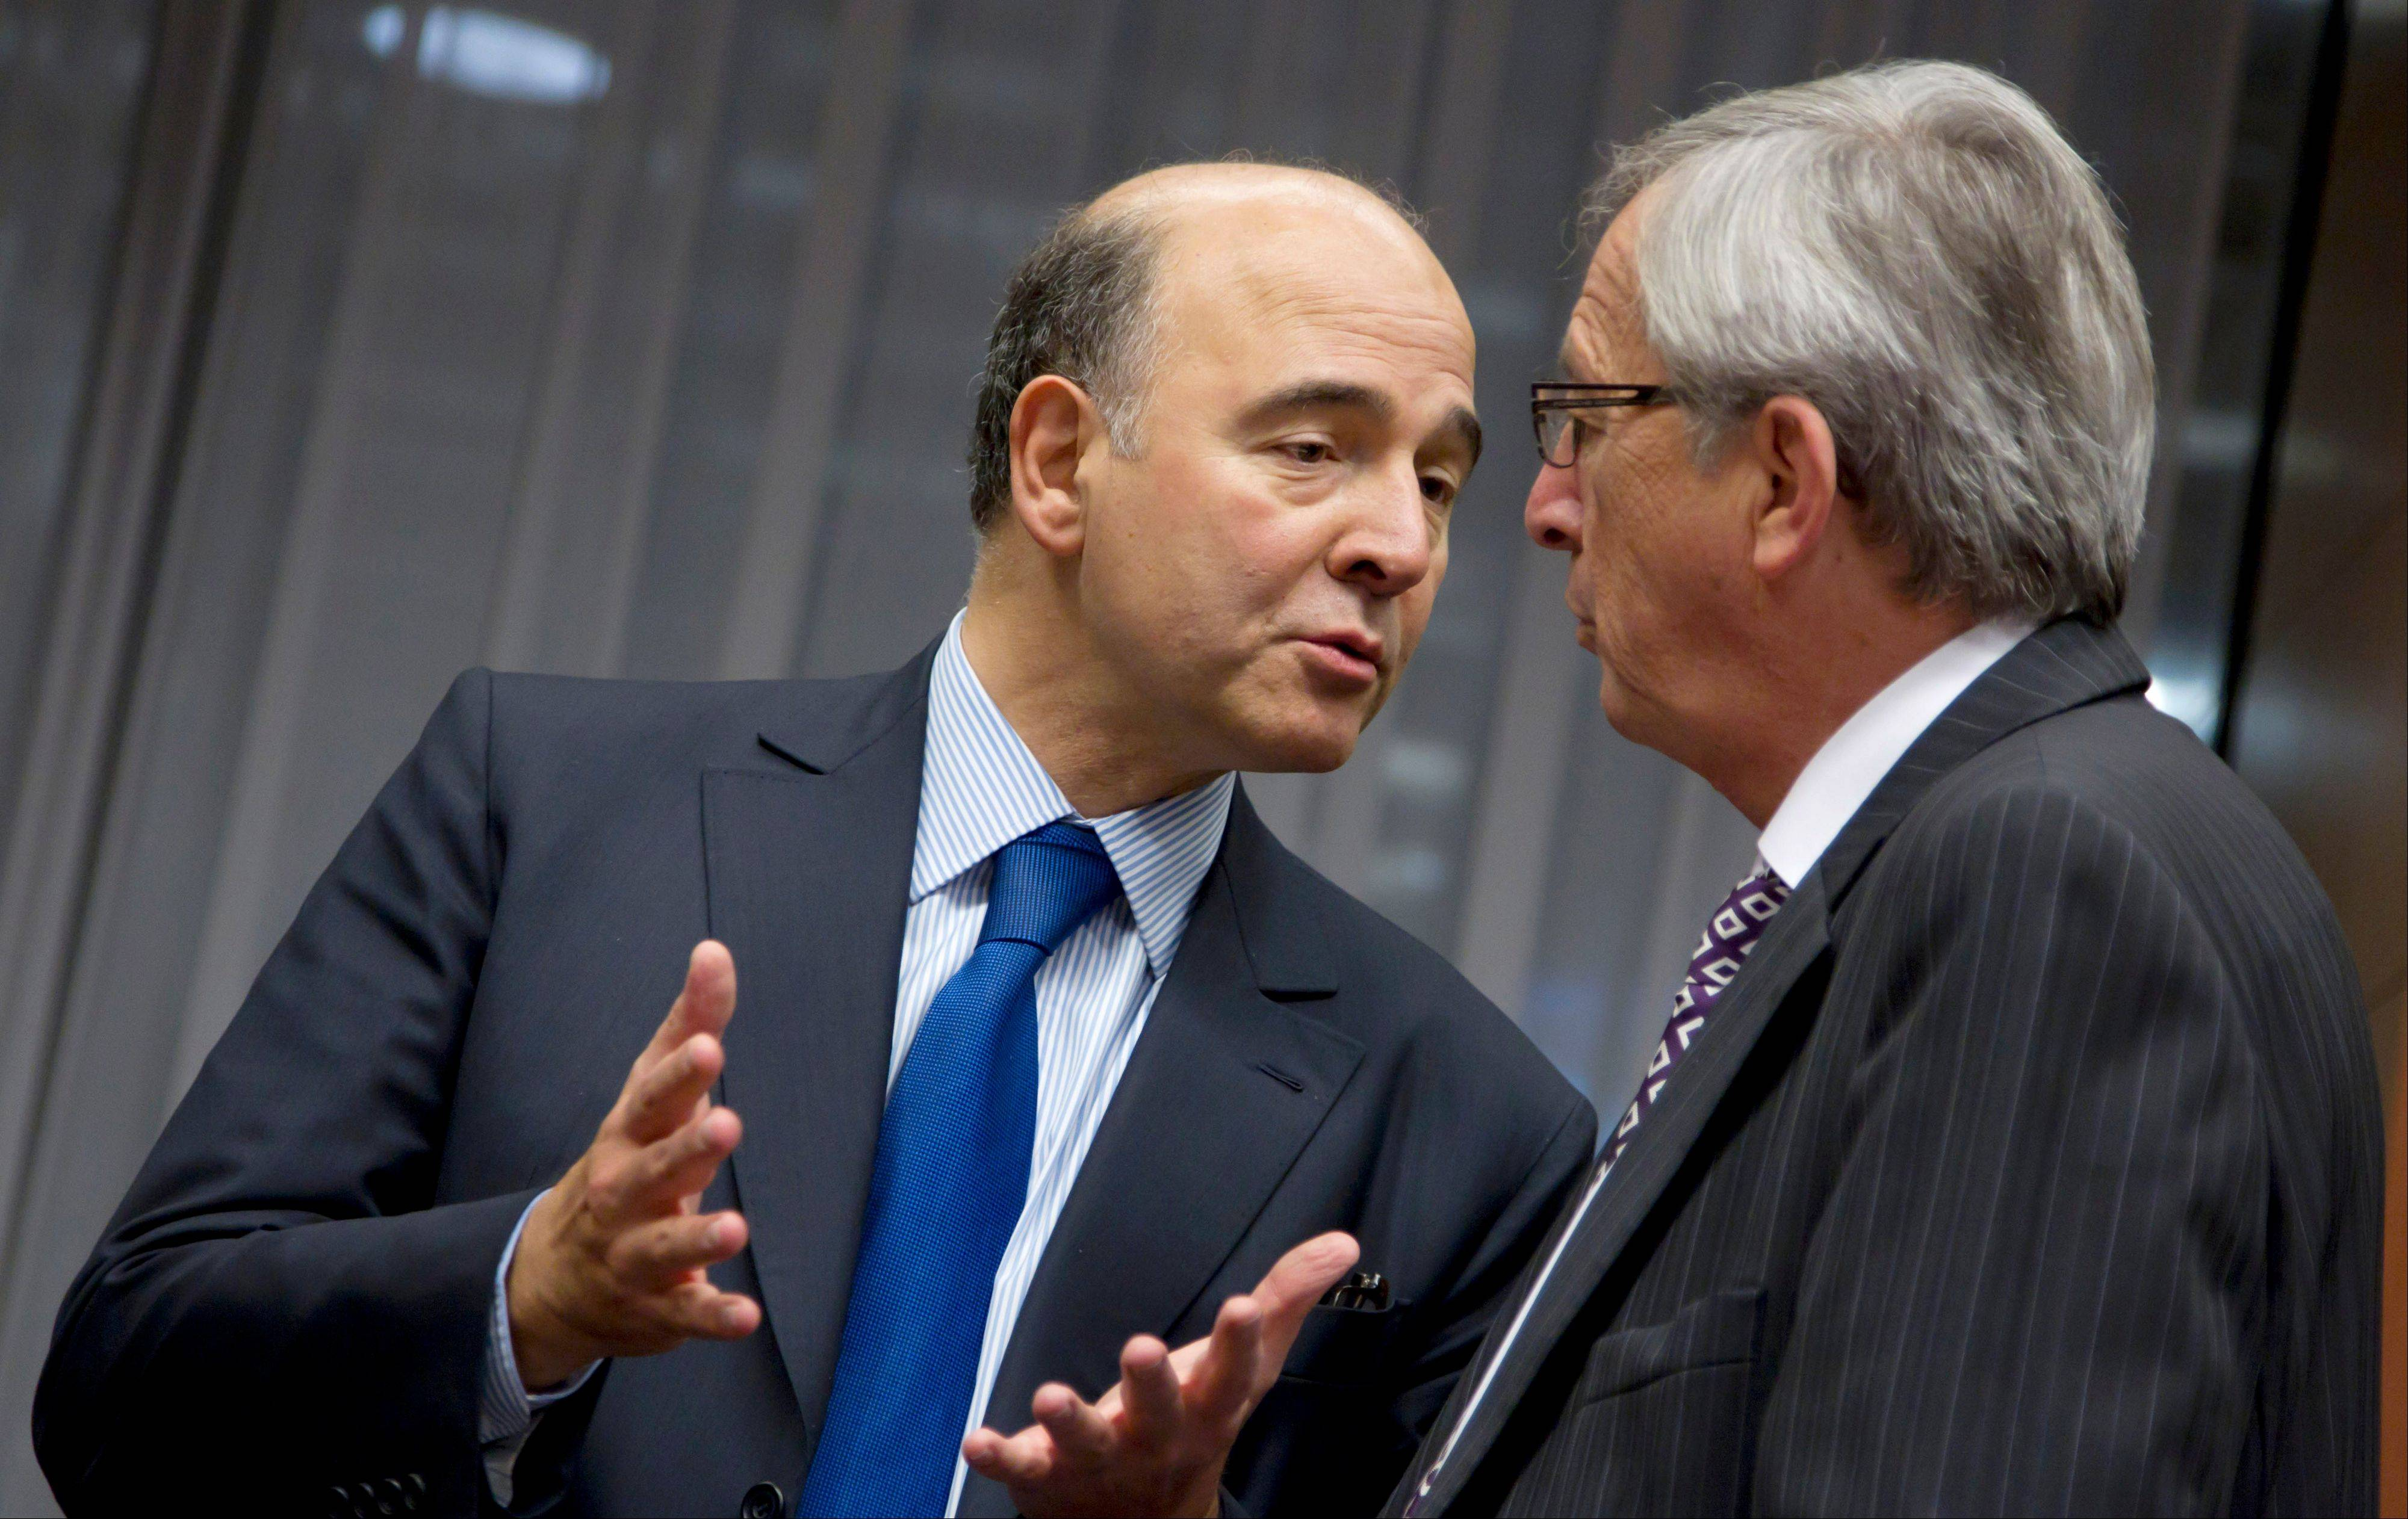 Luxembourg's Prime Minister Jean-Claude Juncker, right, speaks with French Finance Minister Pierre Moscovici during a meeting of eurogroup finance ministers in Brussels.